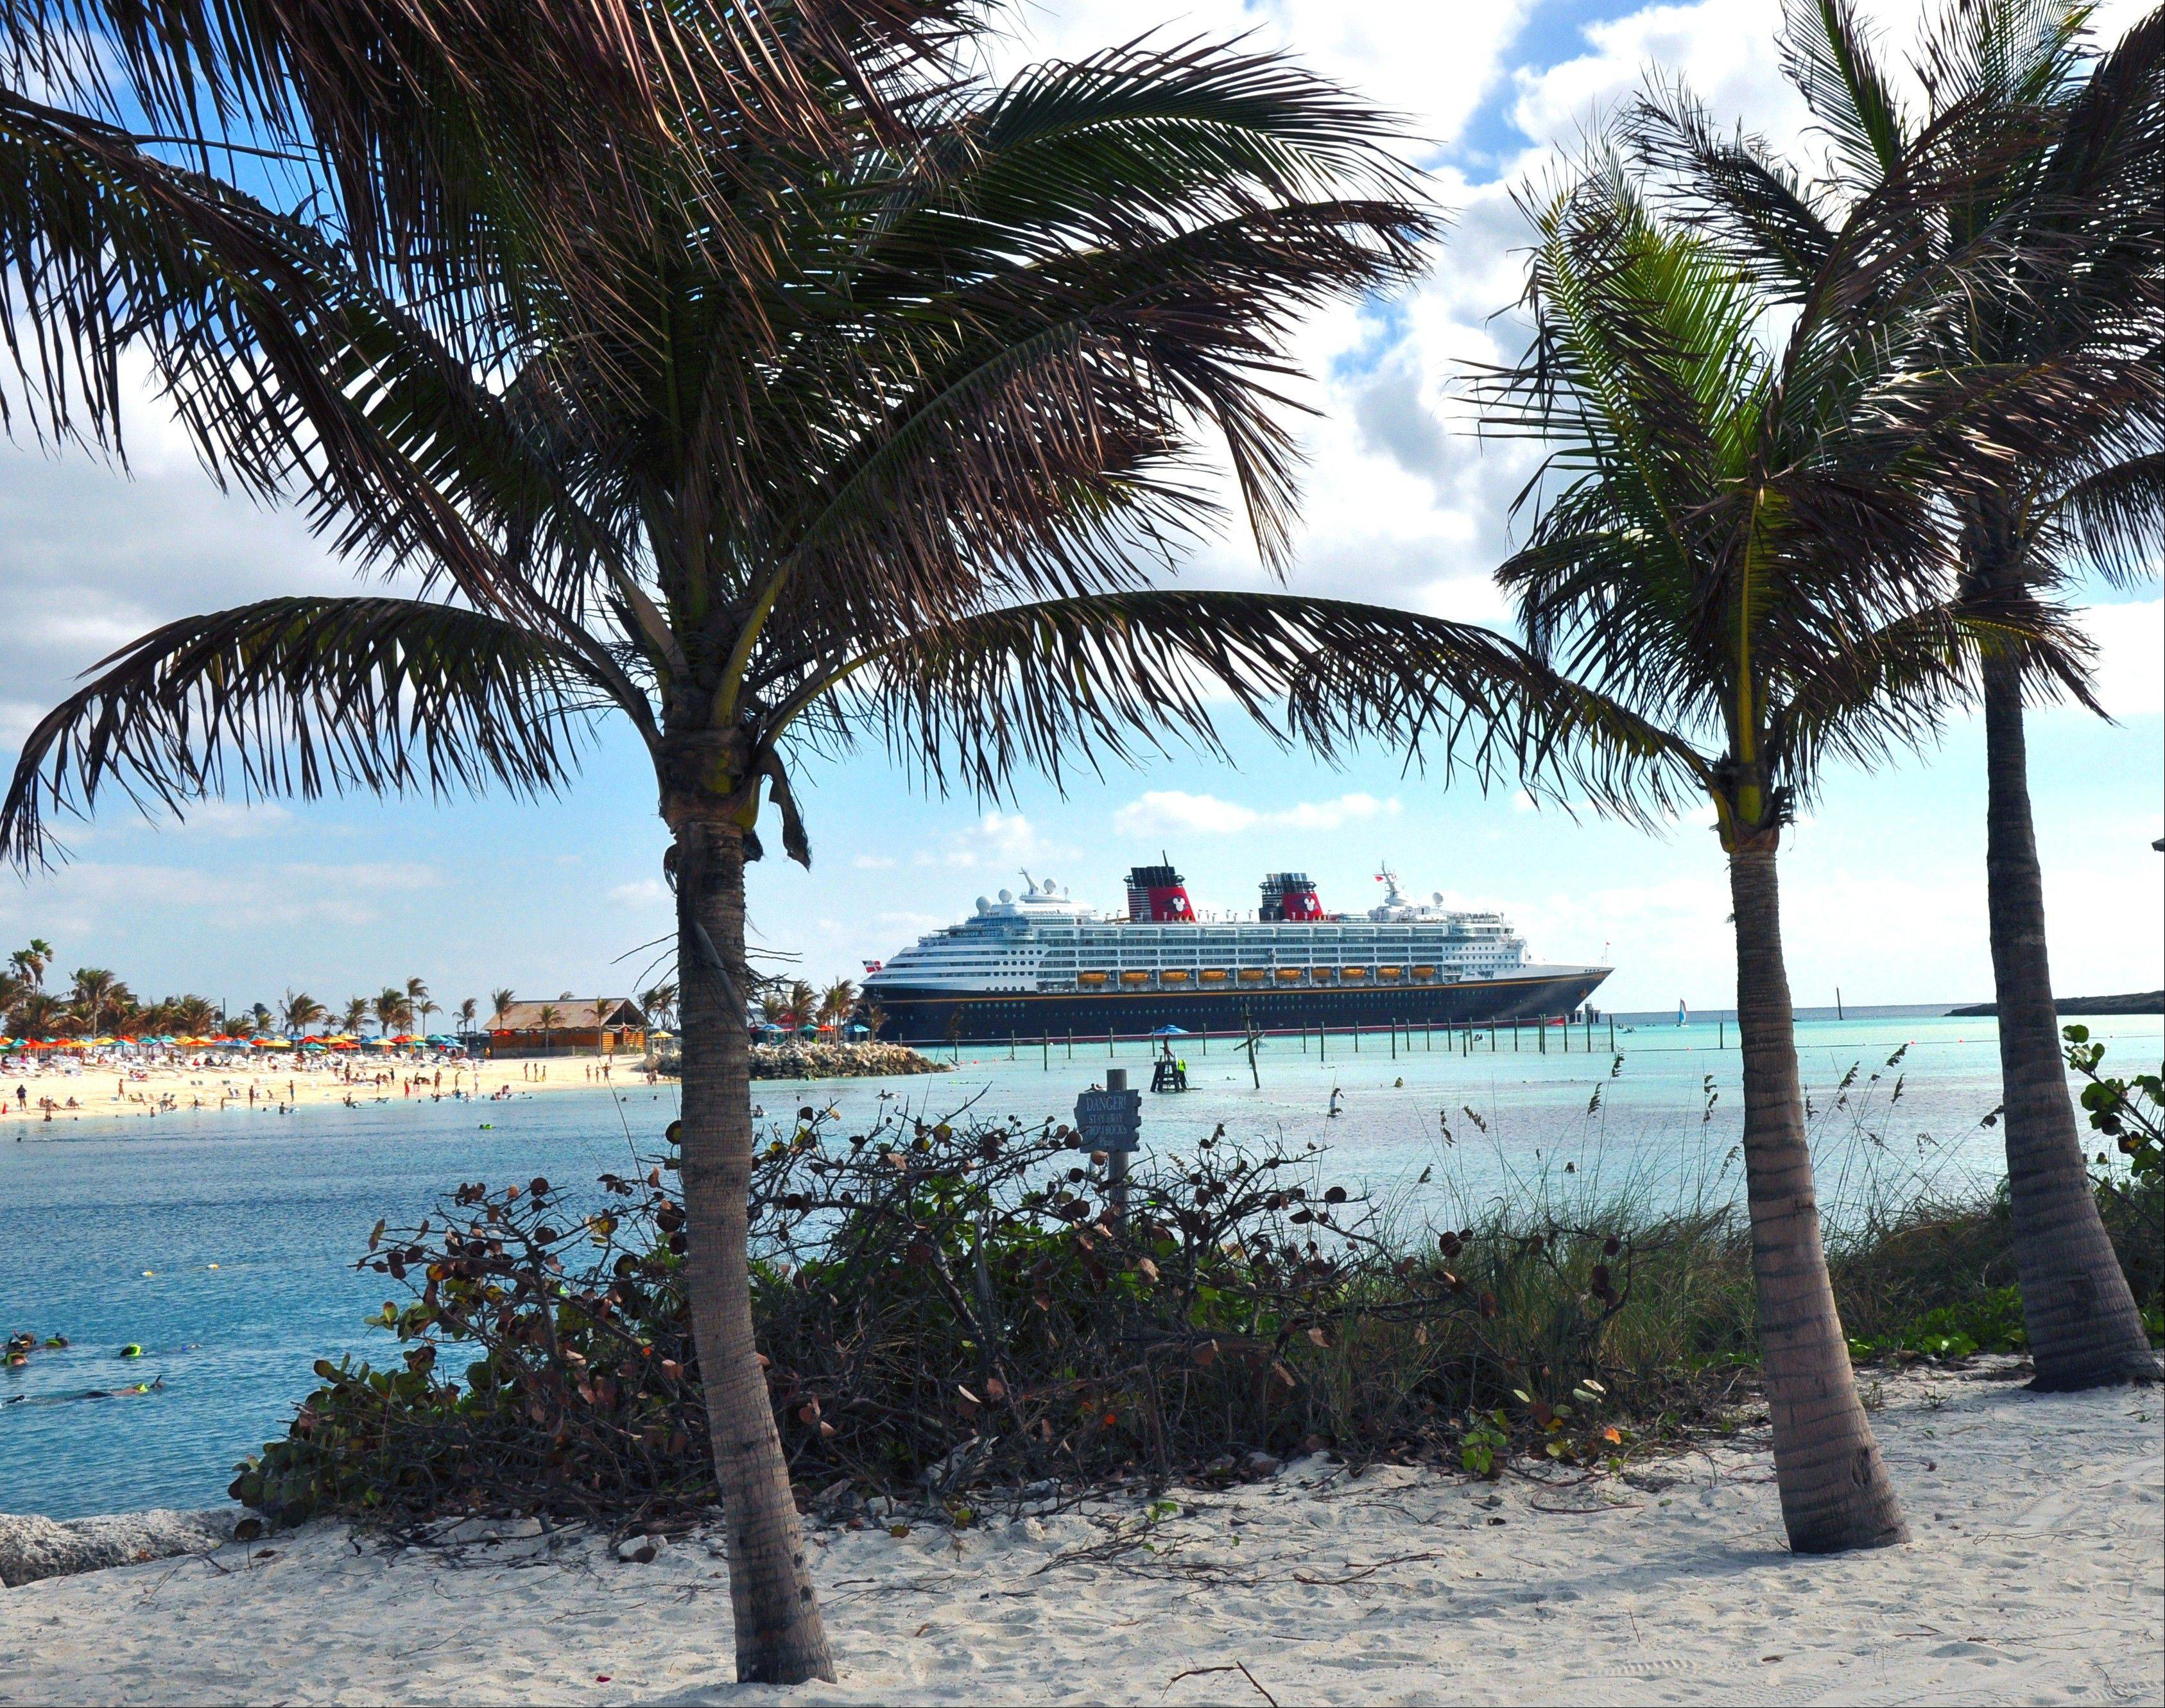 Castaway Cay is Disney Cruise Line's private island in the Bahamas. Passengers choose from the family beach areas or Serenity Bay restricted to ages 18 and older.